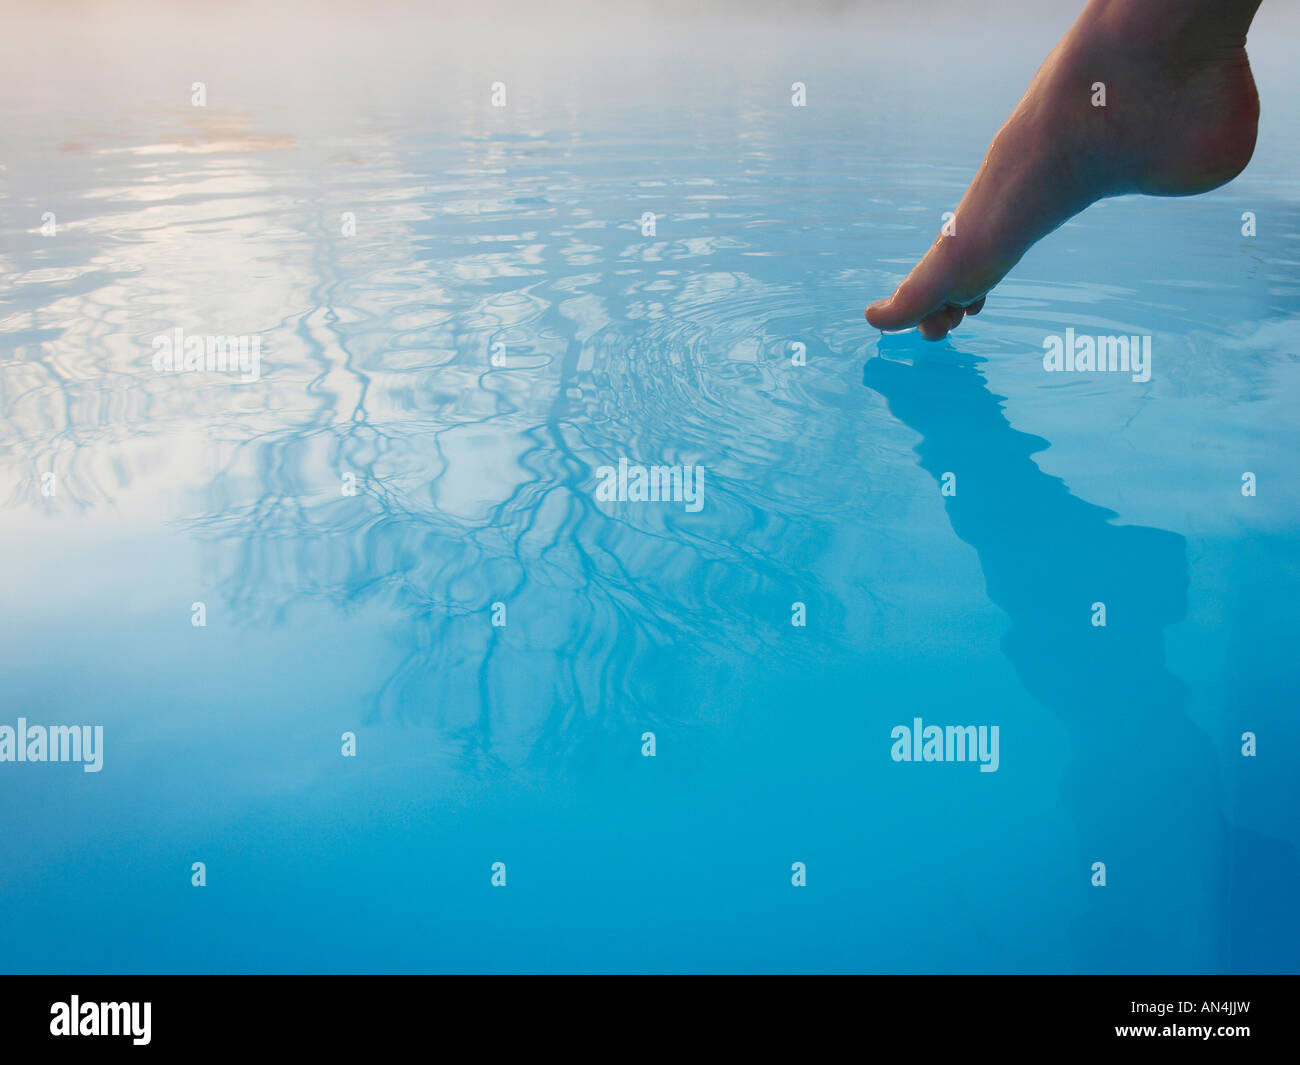 Toe Feeling Water Temperature In Outdoor Swimming Pool Stock Photo Royalty Free Image 15410304